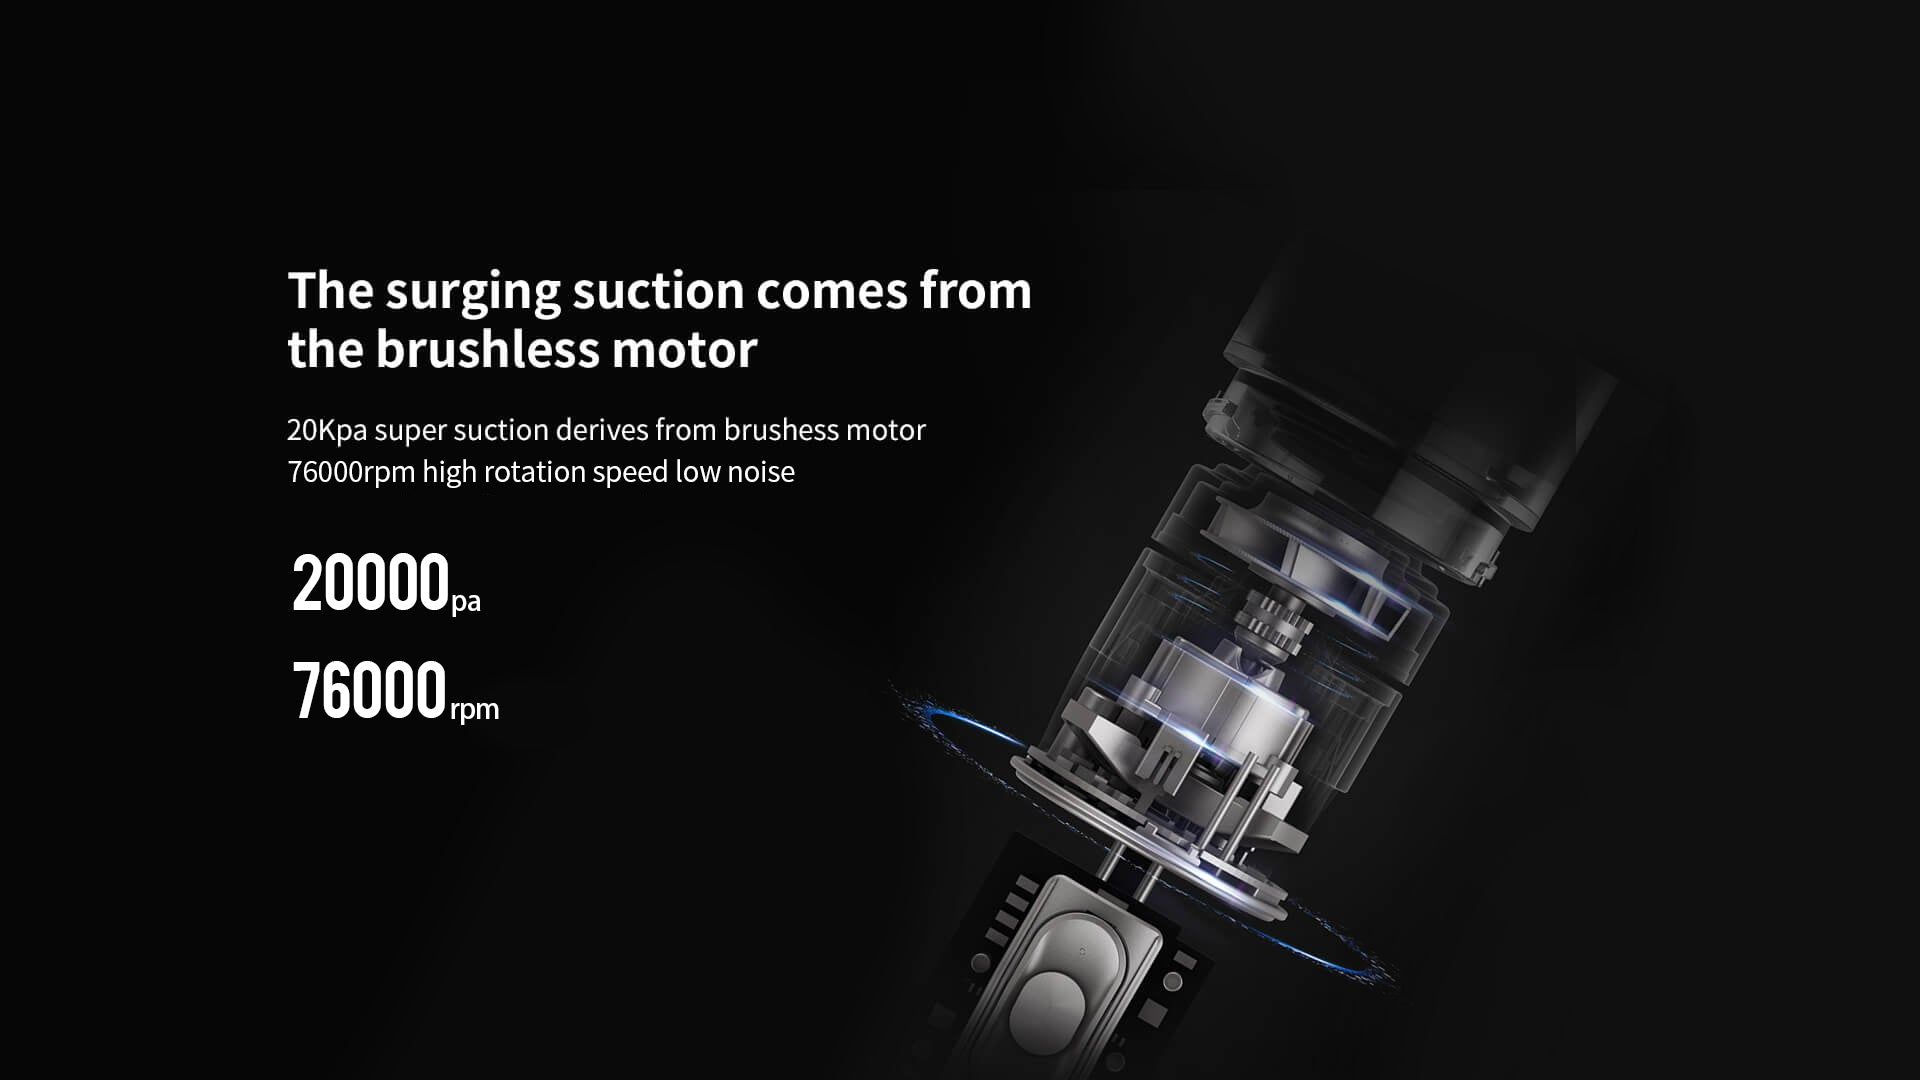 The surging suction comes from the brushless motorHight-speed brushless motor,20000pa tDisruptive big suction,three 21700 battery cells 40min lasting working,wireless charging base,intelligent chip,triple high-effect filtering